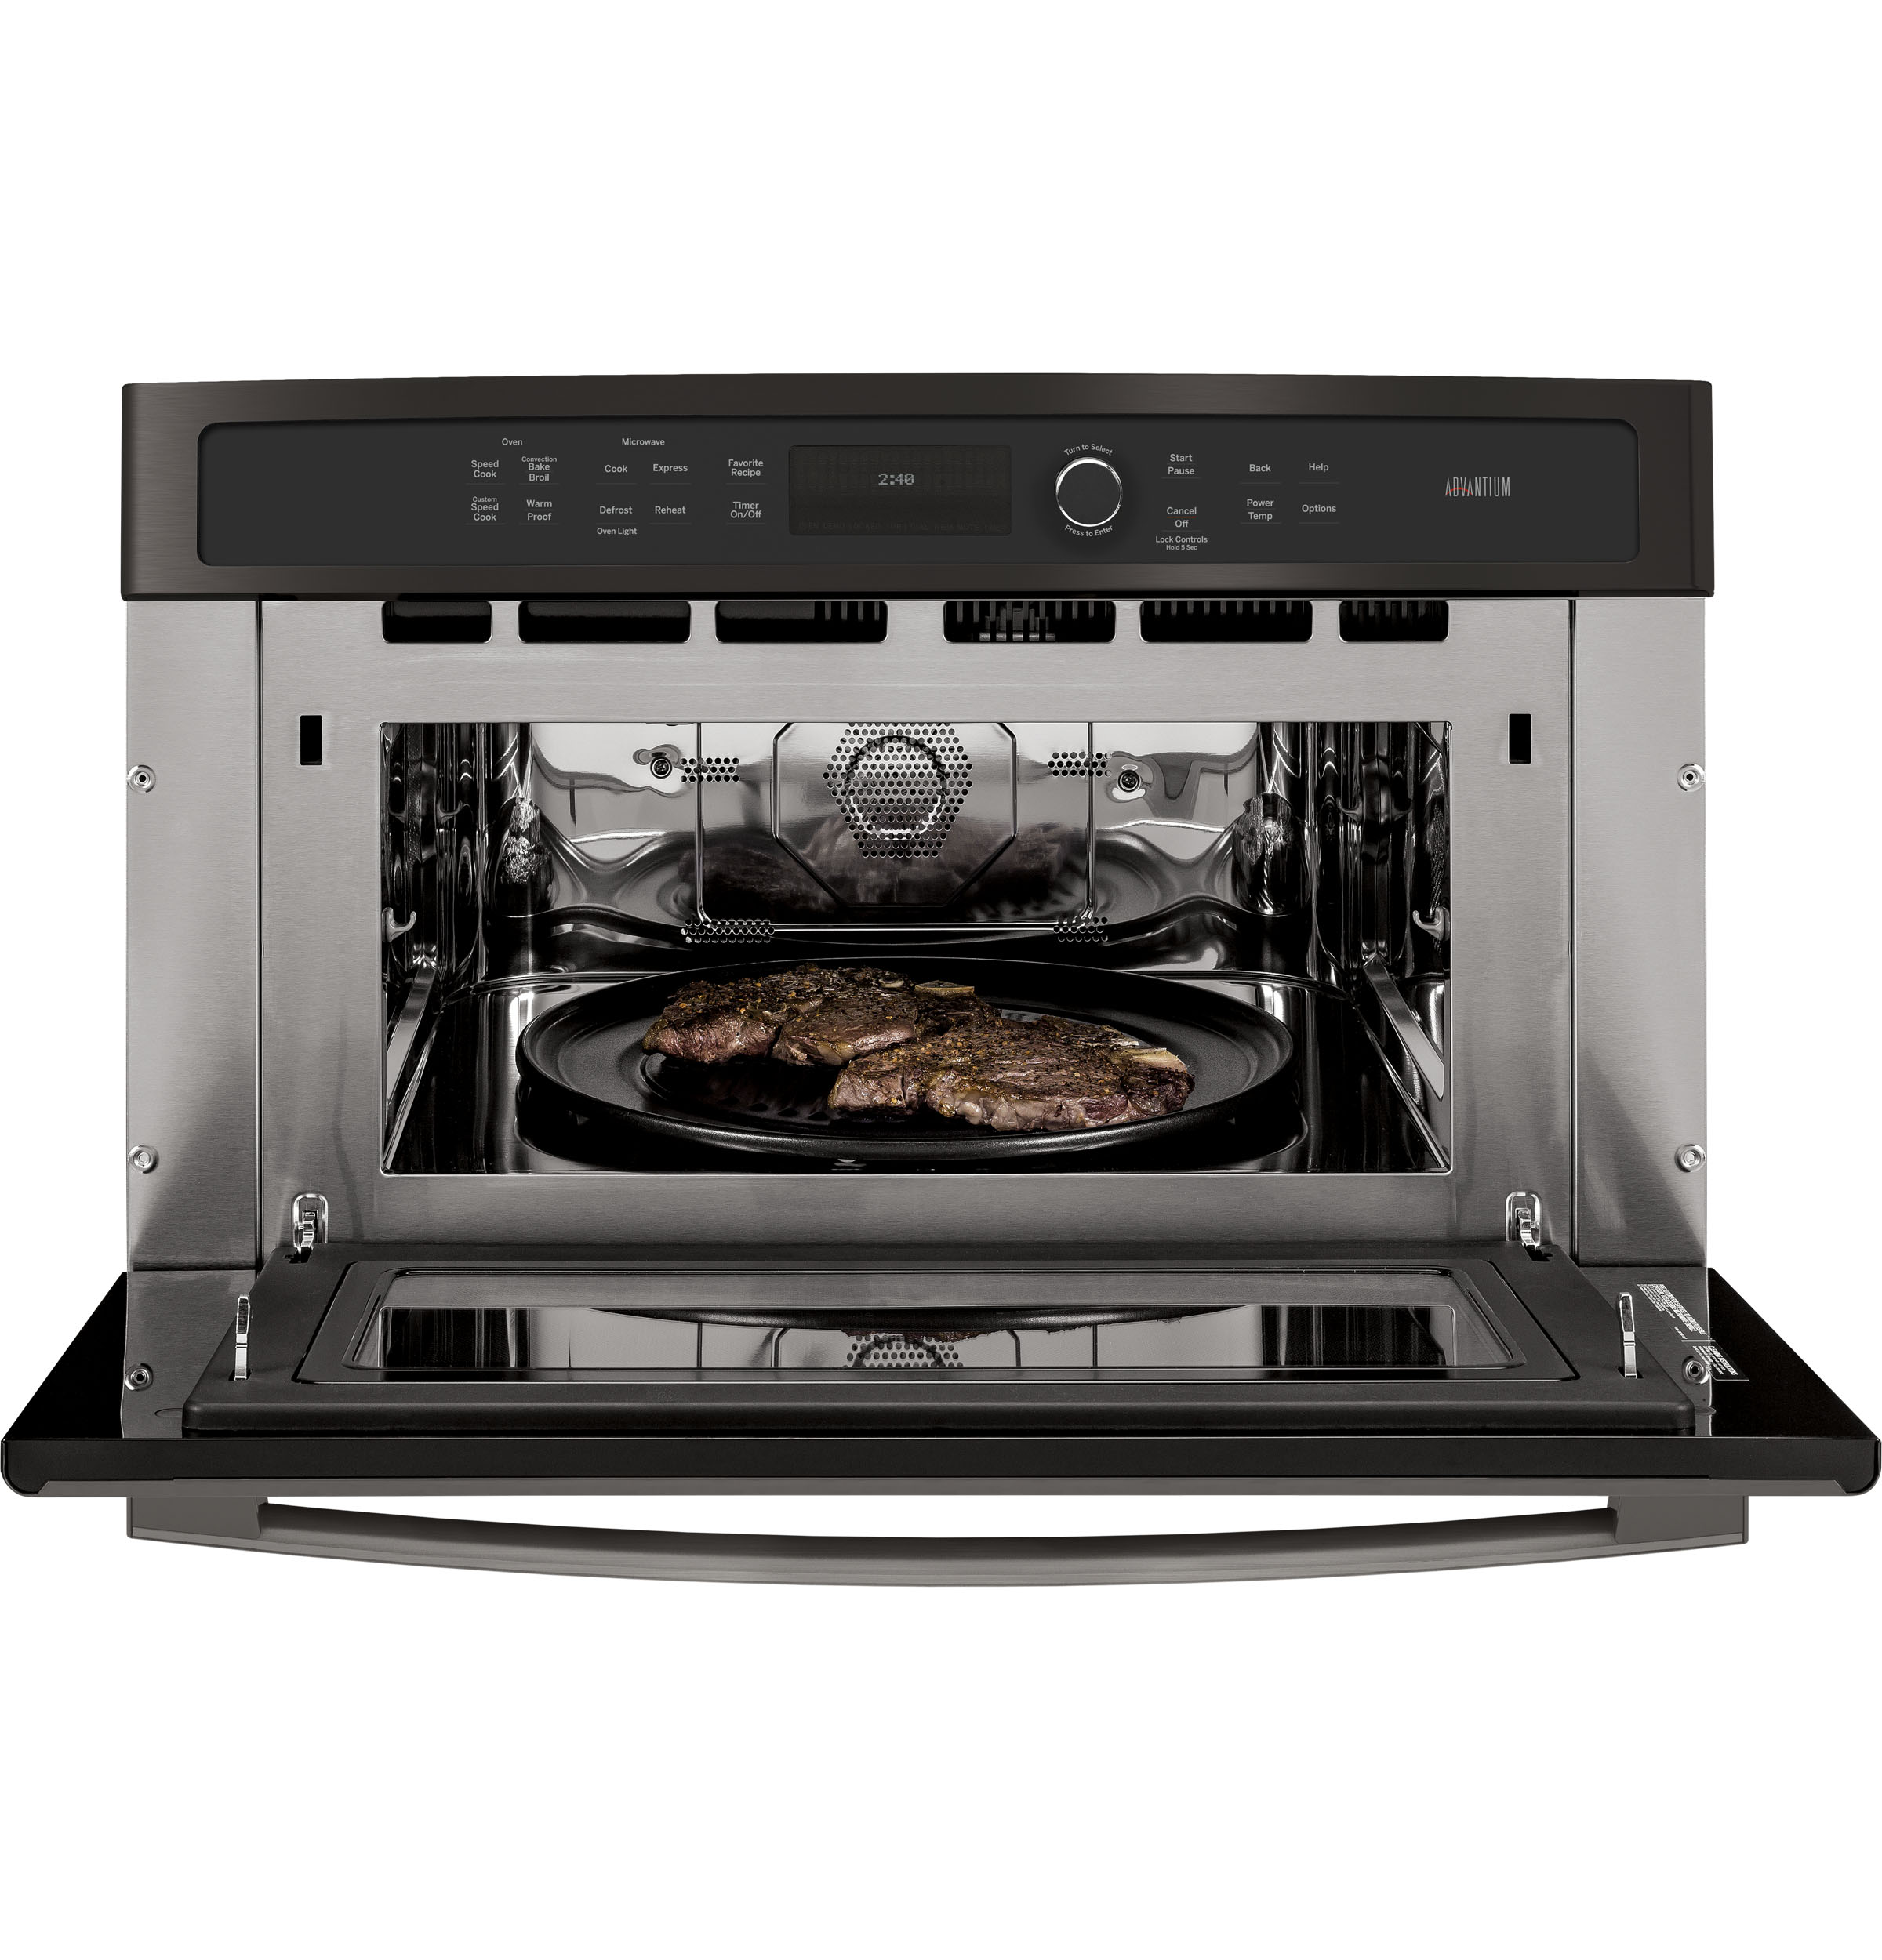 Model: PSB9240BLTS | GE Profile GE Profile™ 30 in. Single Wall Oven with Advantium® Technology